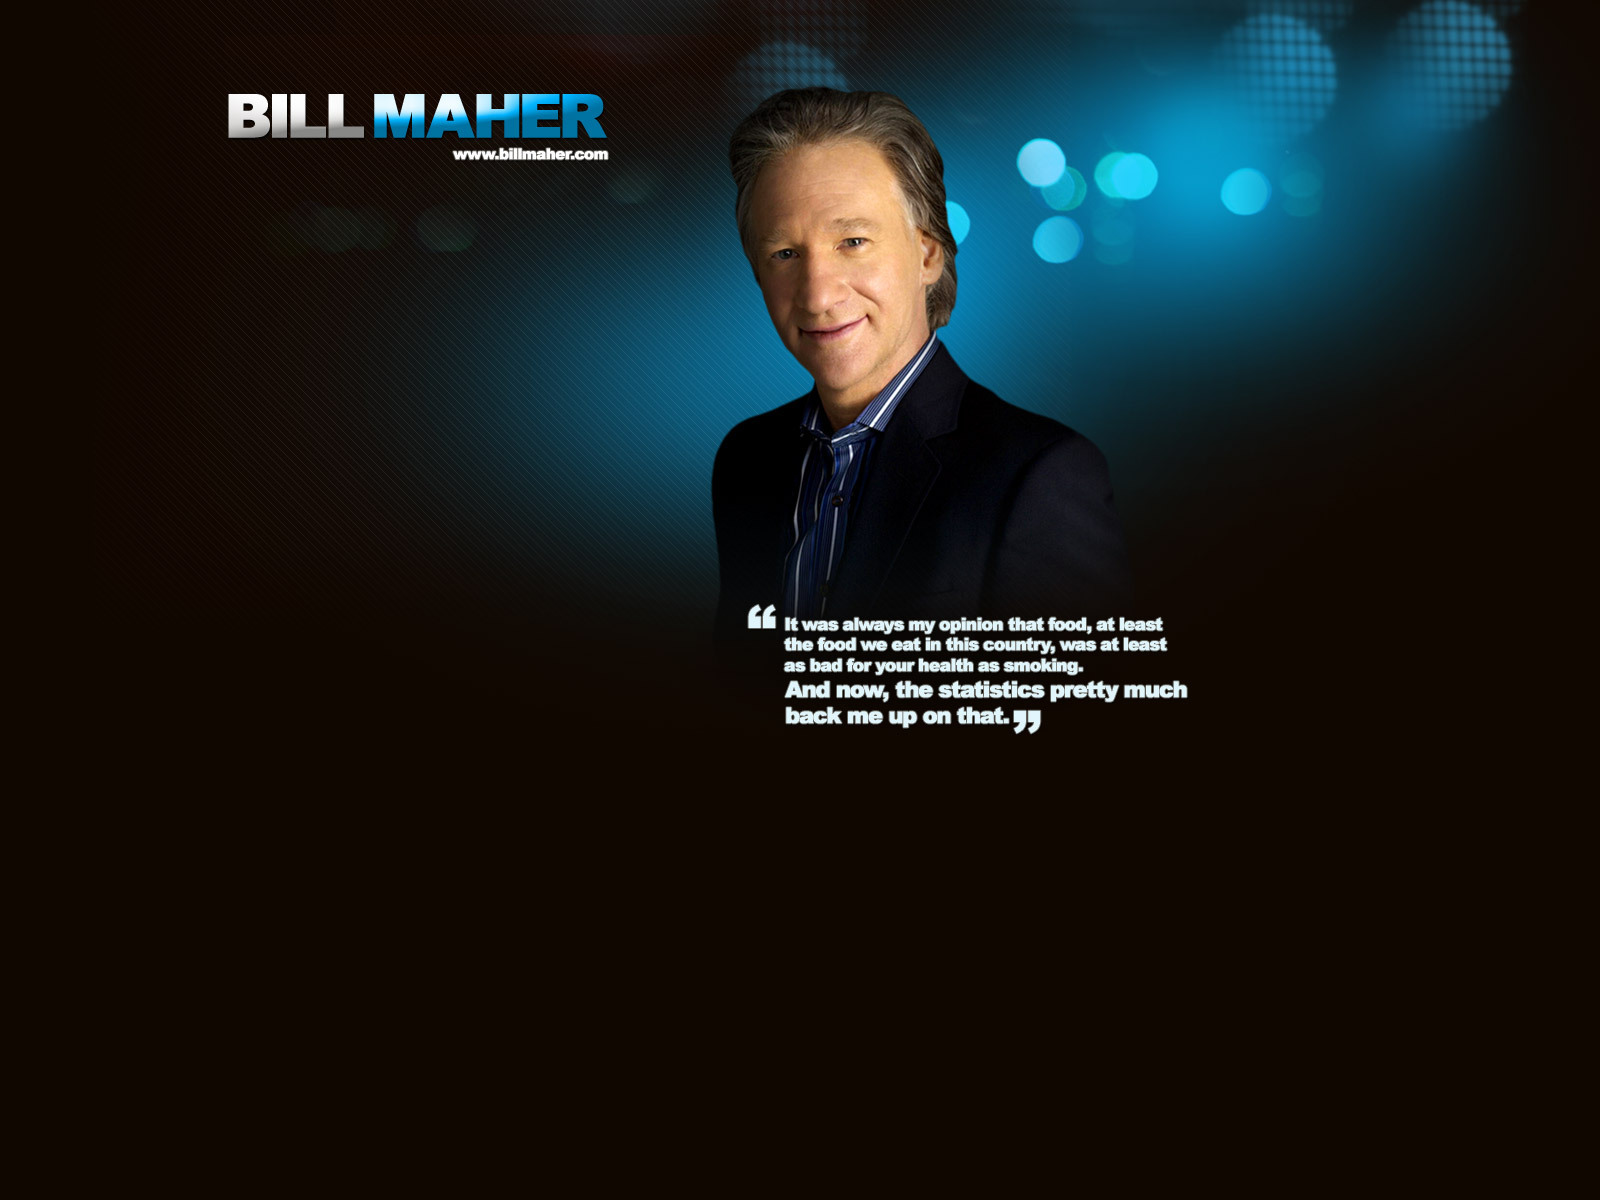 bill-maher Wallpaper .